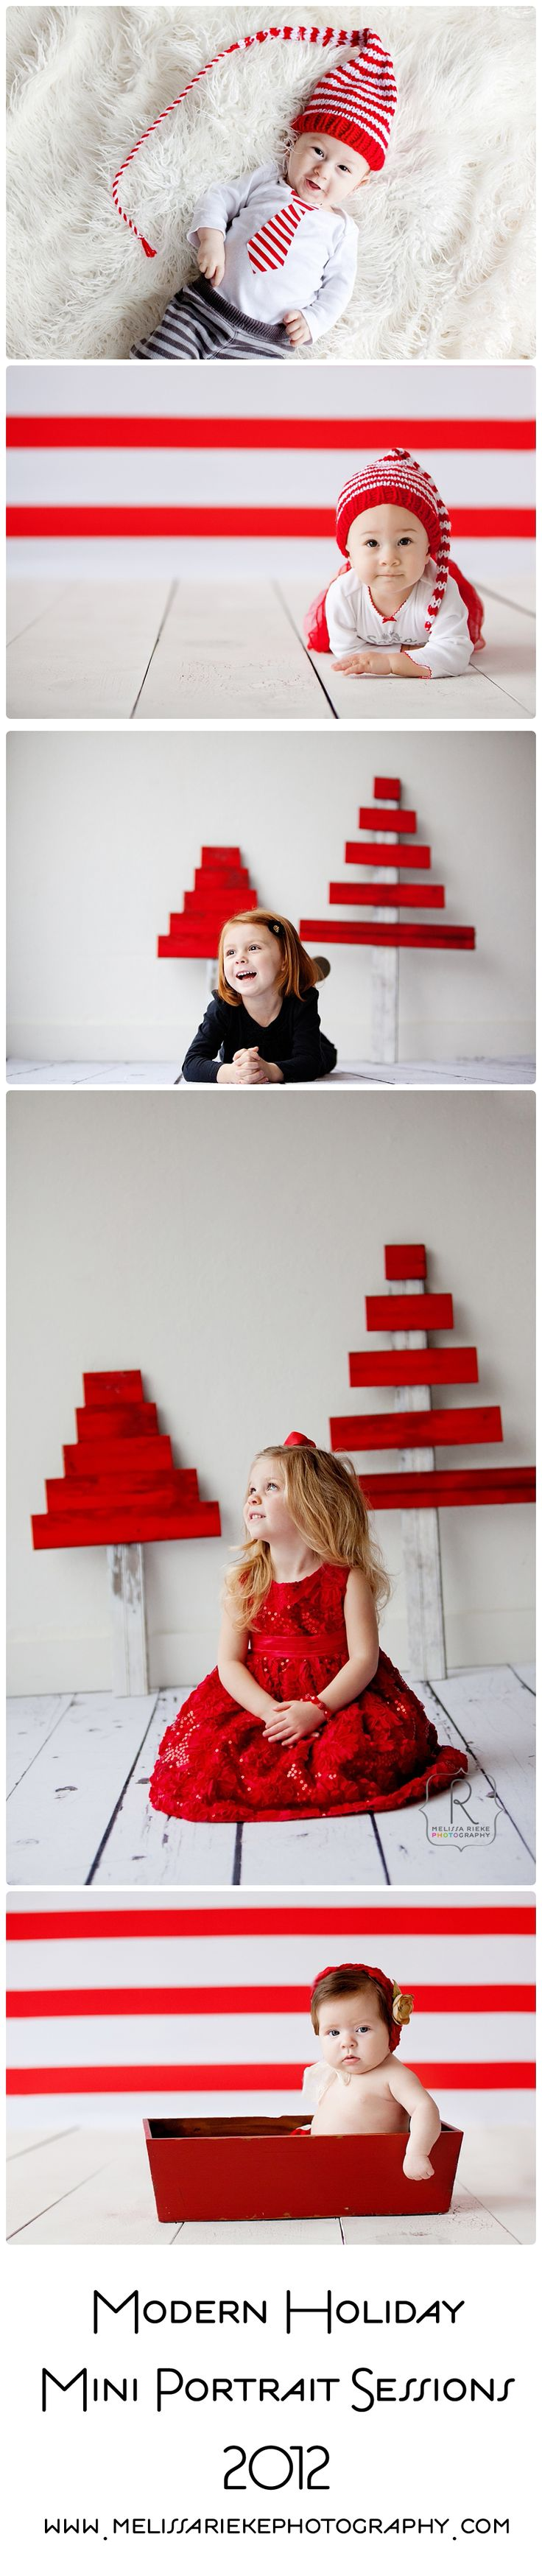 Melissa Rieke Photography | Modern Holiday Mini Sessions | www.melissariekephotography.com | #holiday #kansascity #minisessions #christmas #photography